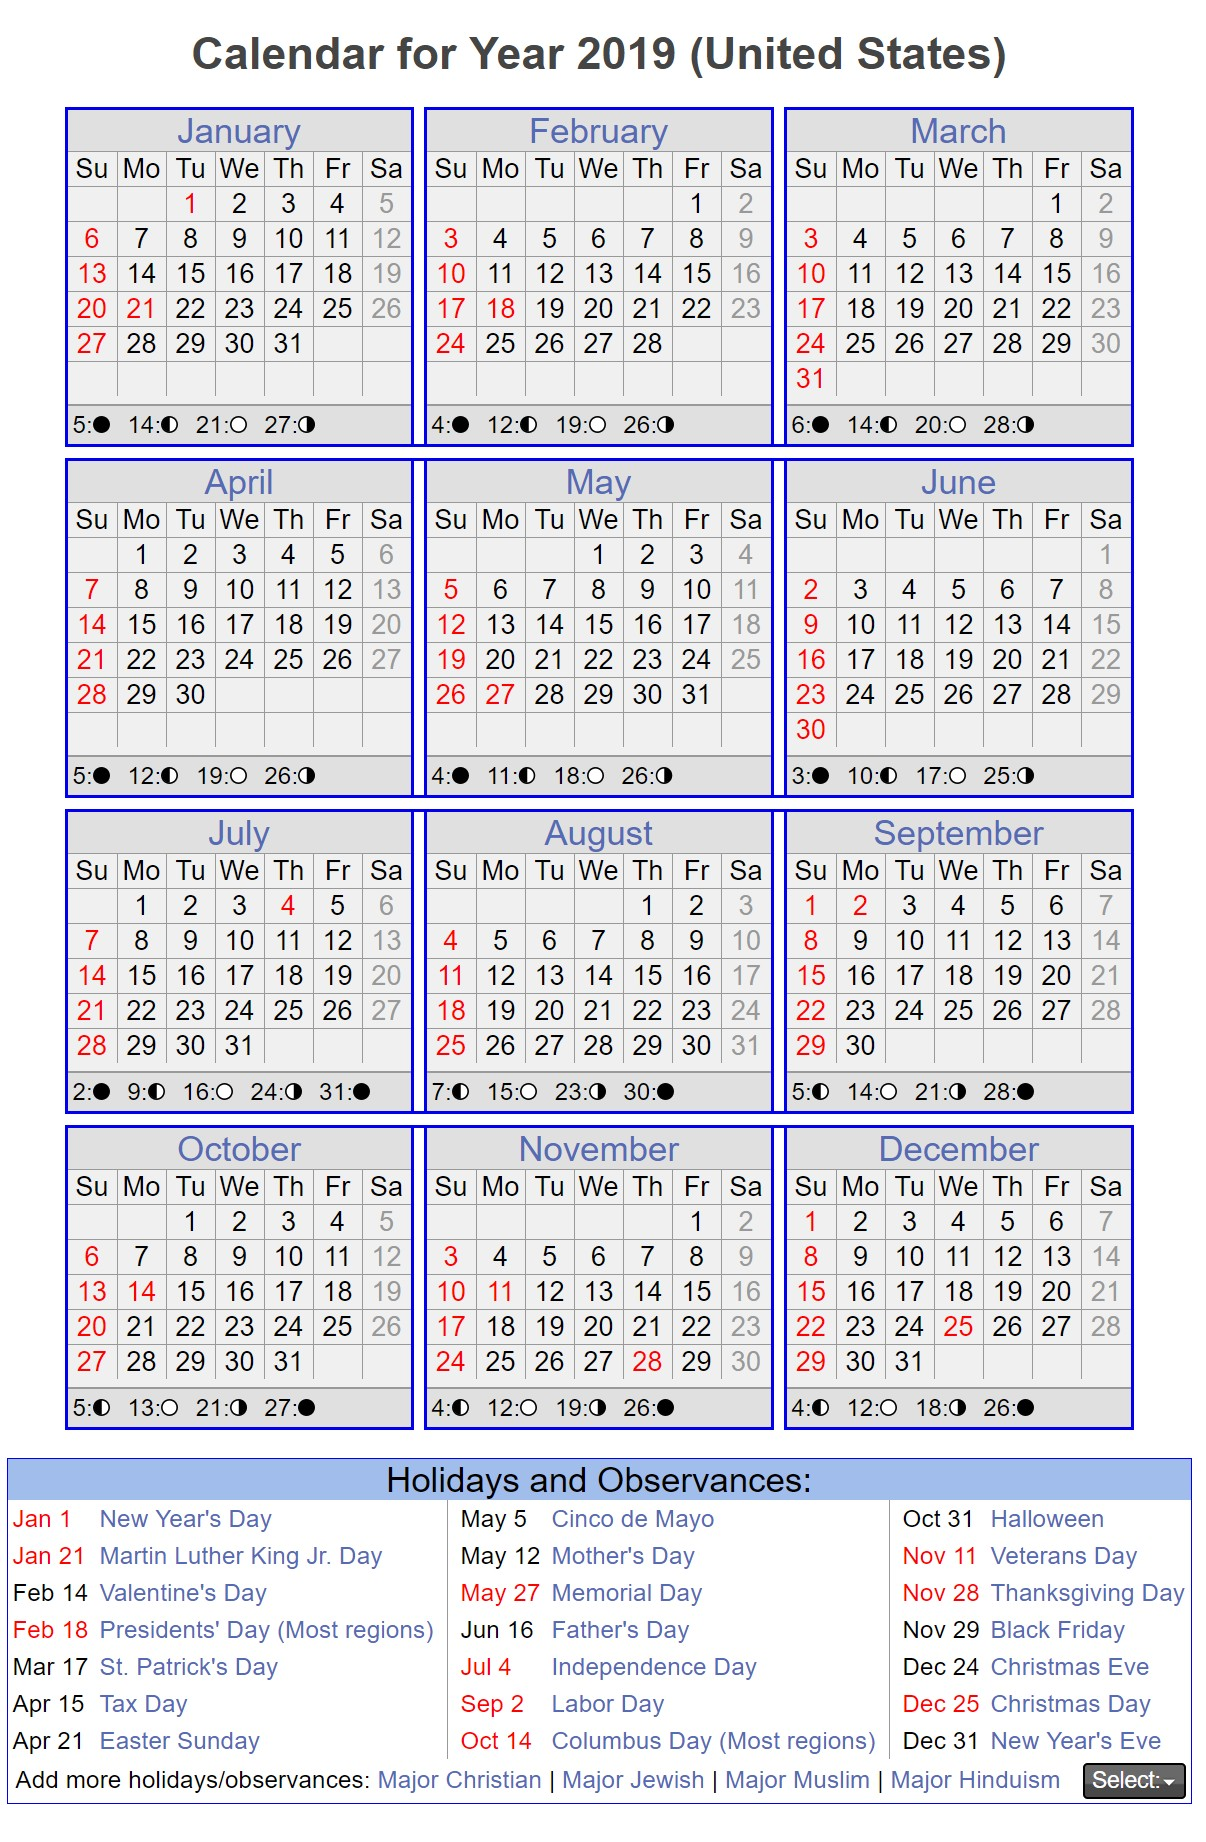 Calendario 2019 Vector Gratis Más Populares One Year Calendar 2019 with Blank Us Holidays 12 Months On Of Calendario 2019 Vector Gratis Más Recientes Advice Regarding Calendar 2019 Chinese New Year Calendar Online 2019